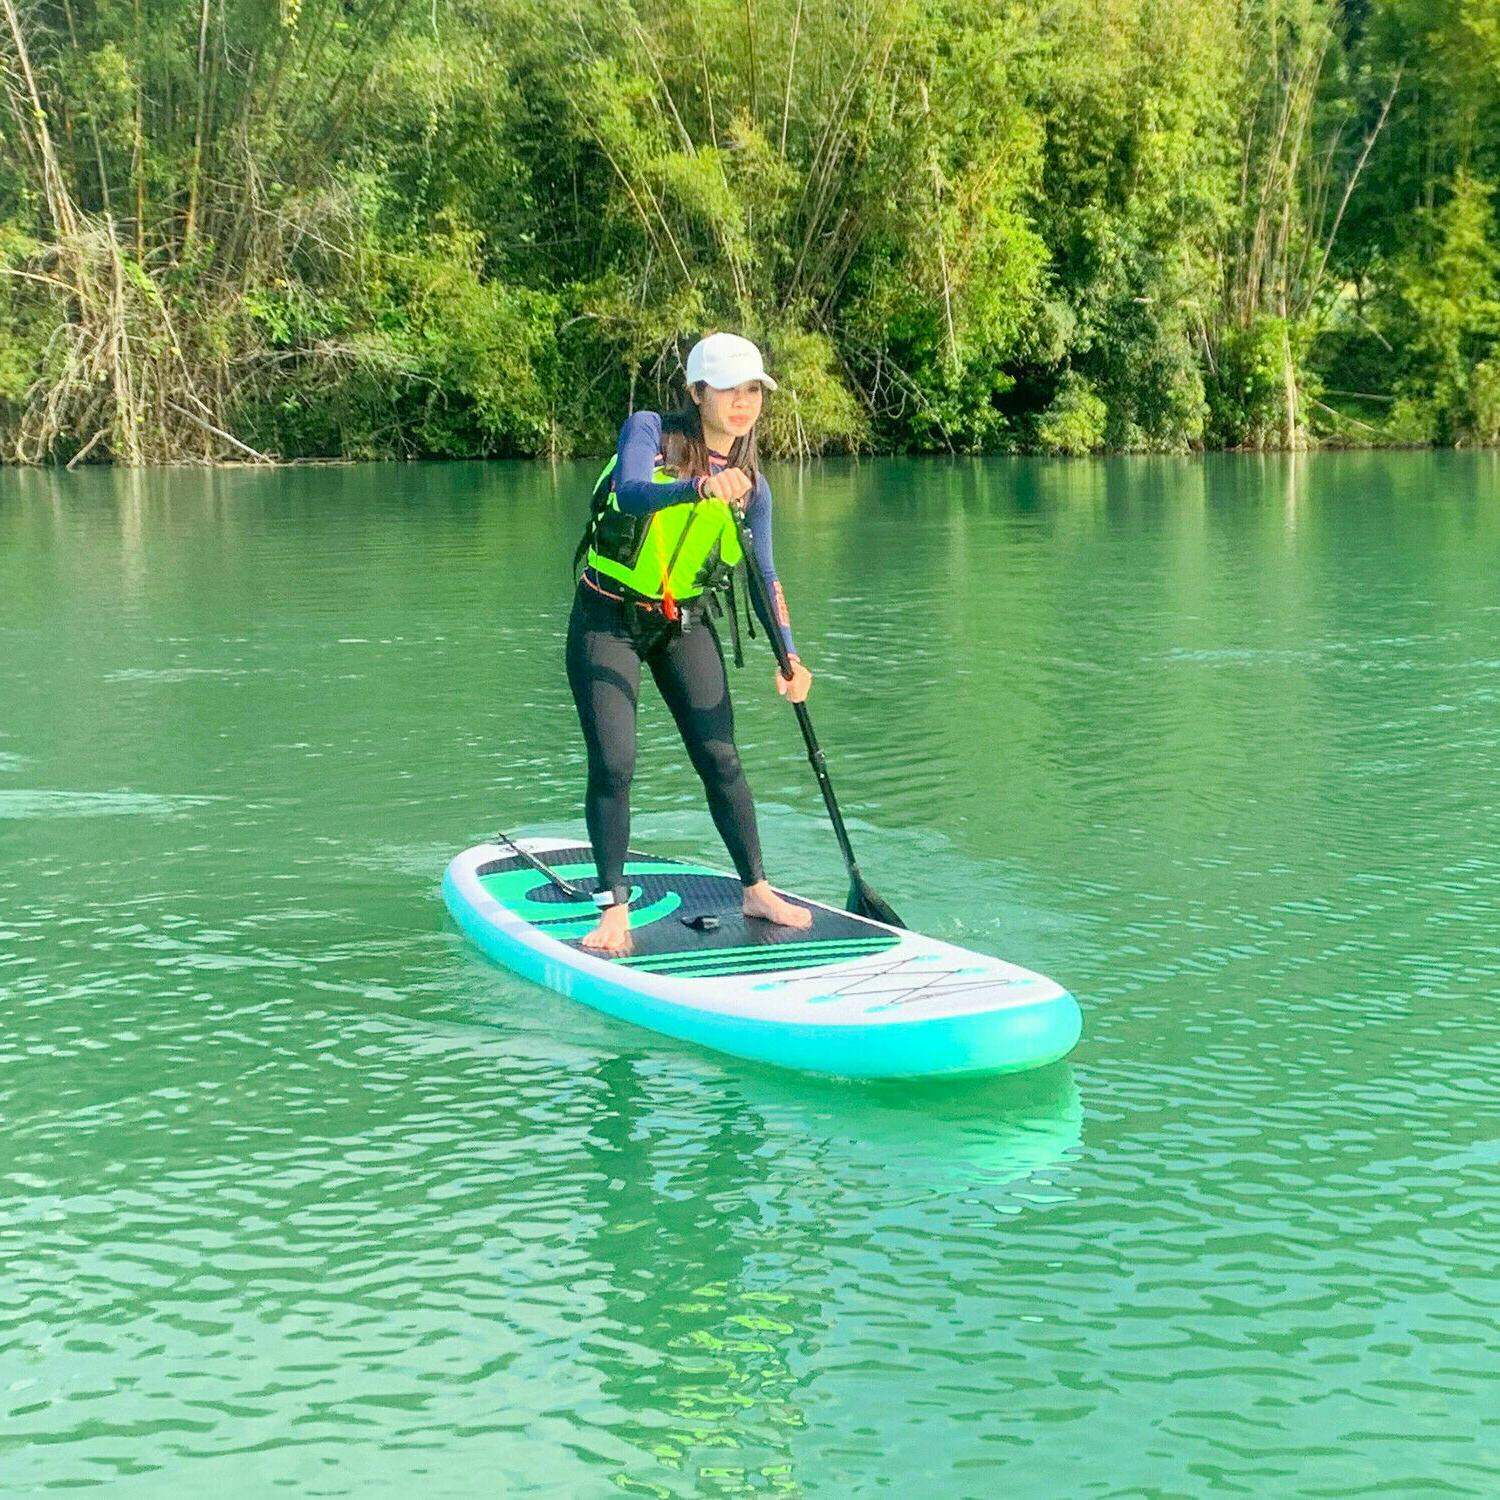 used SUP Paddle Surfboard